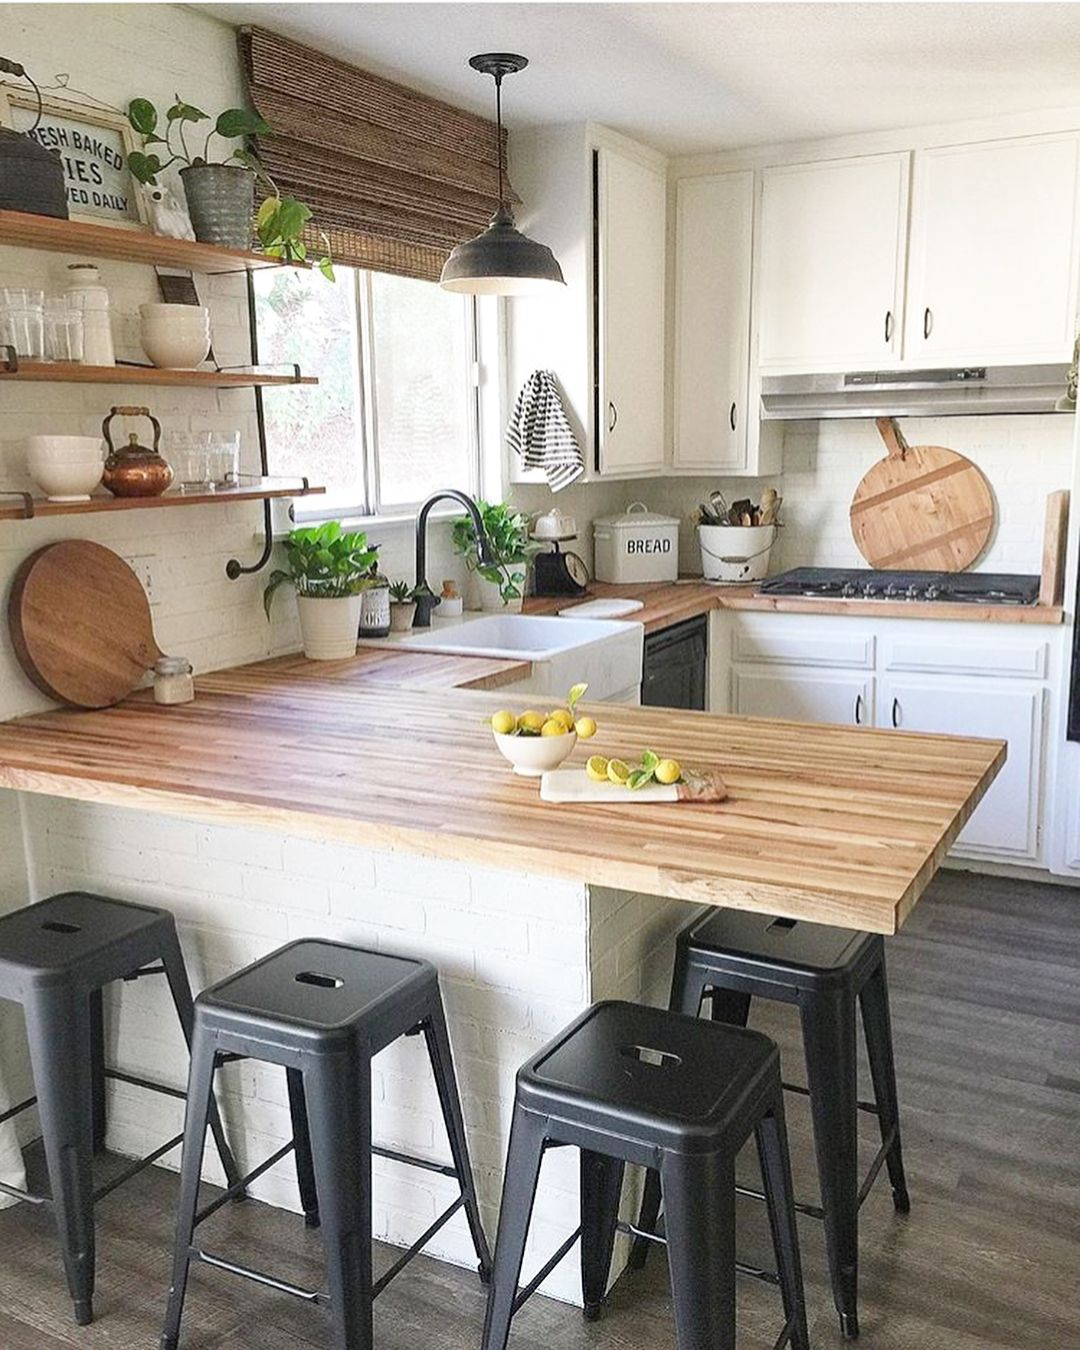 Black Kitchen Cabinets With Butcher Block Countertops: Isn't This Kitchen So Warm And Inviting? I Just Love The Wood Butcher Block And Black Accents